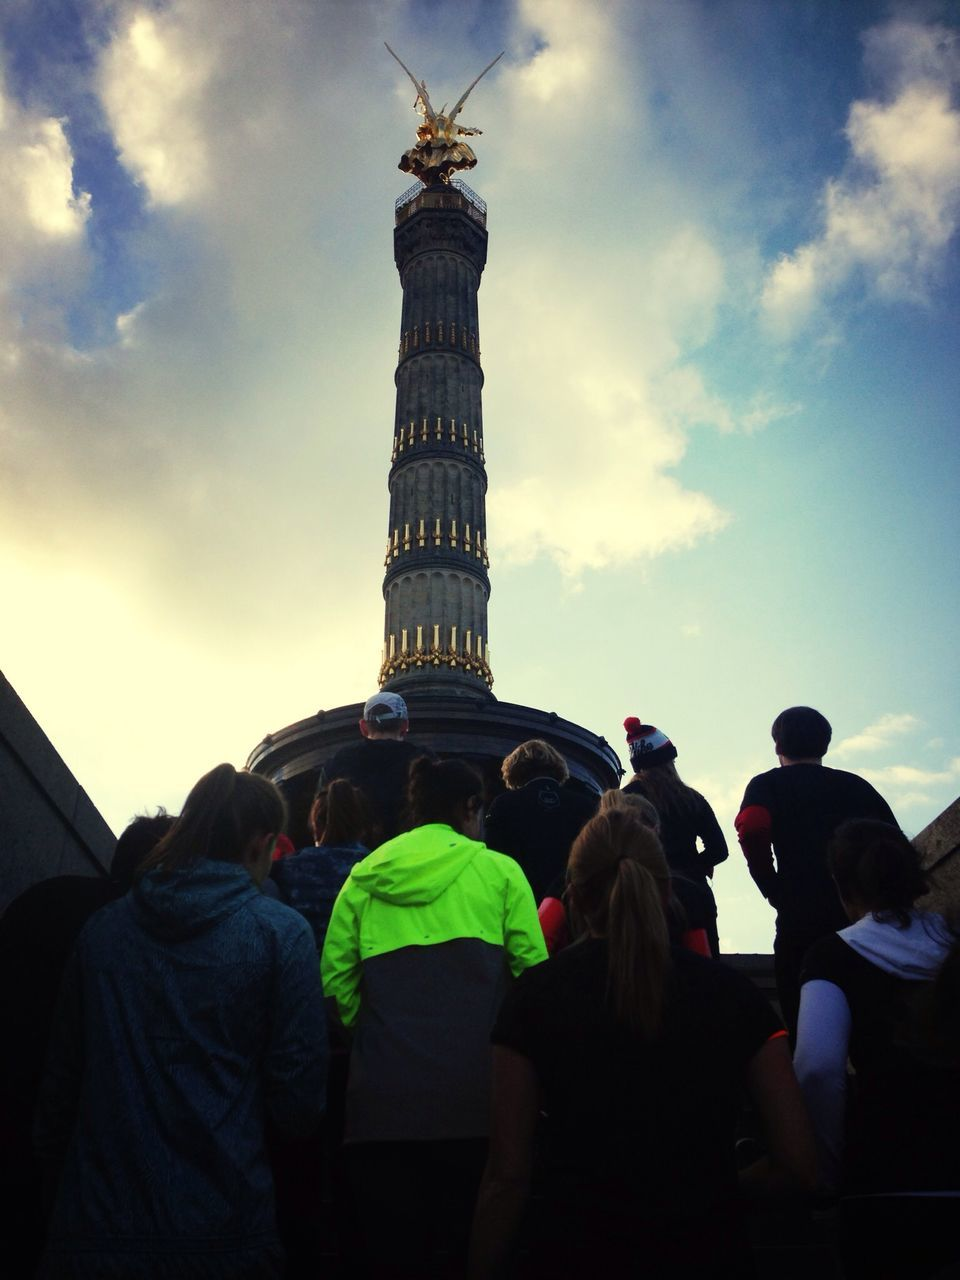 travel destinations, statue, large group of people, cloud - sky, sky, tourism, travel, sculpture, low angle view, architecture, real people, history, women, men, built structure, architectural column, outdoors, lifestyles, day, city, crowd, adult, people